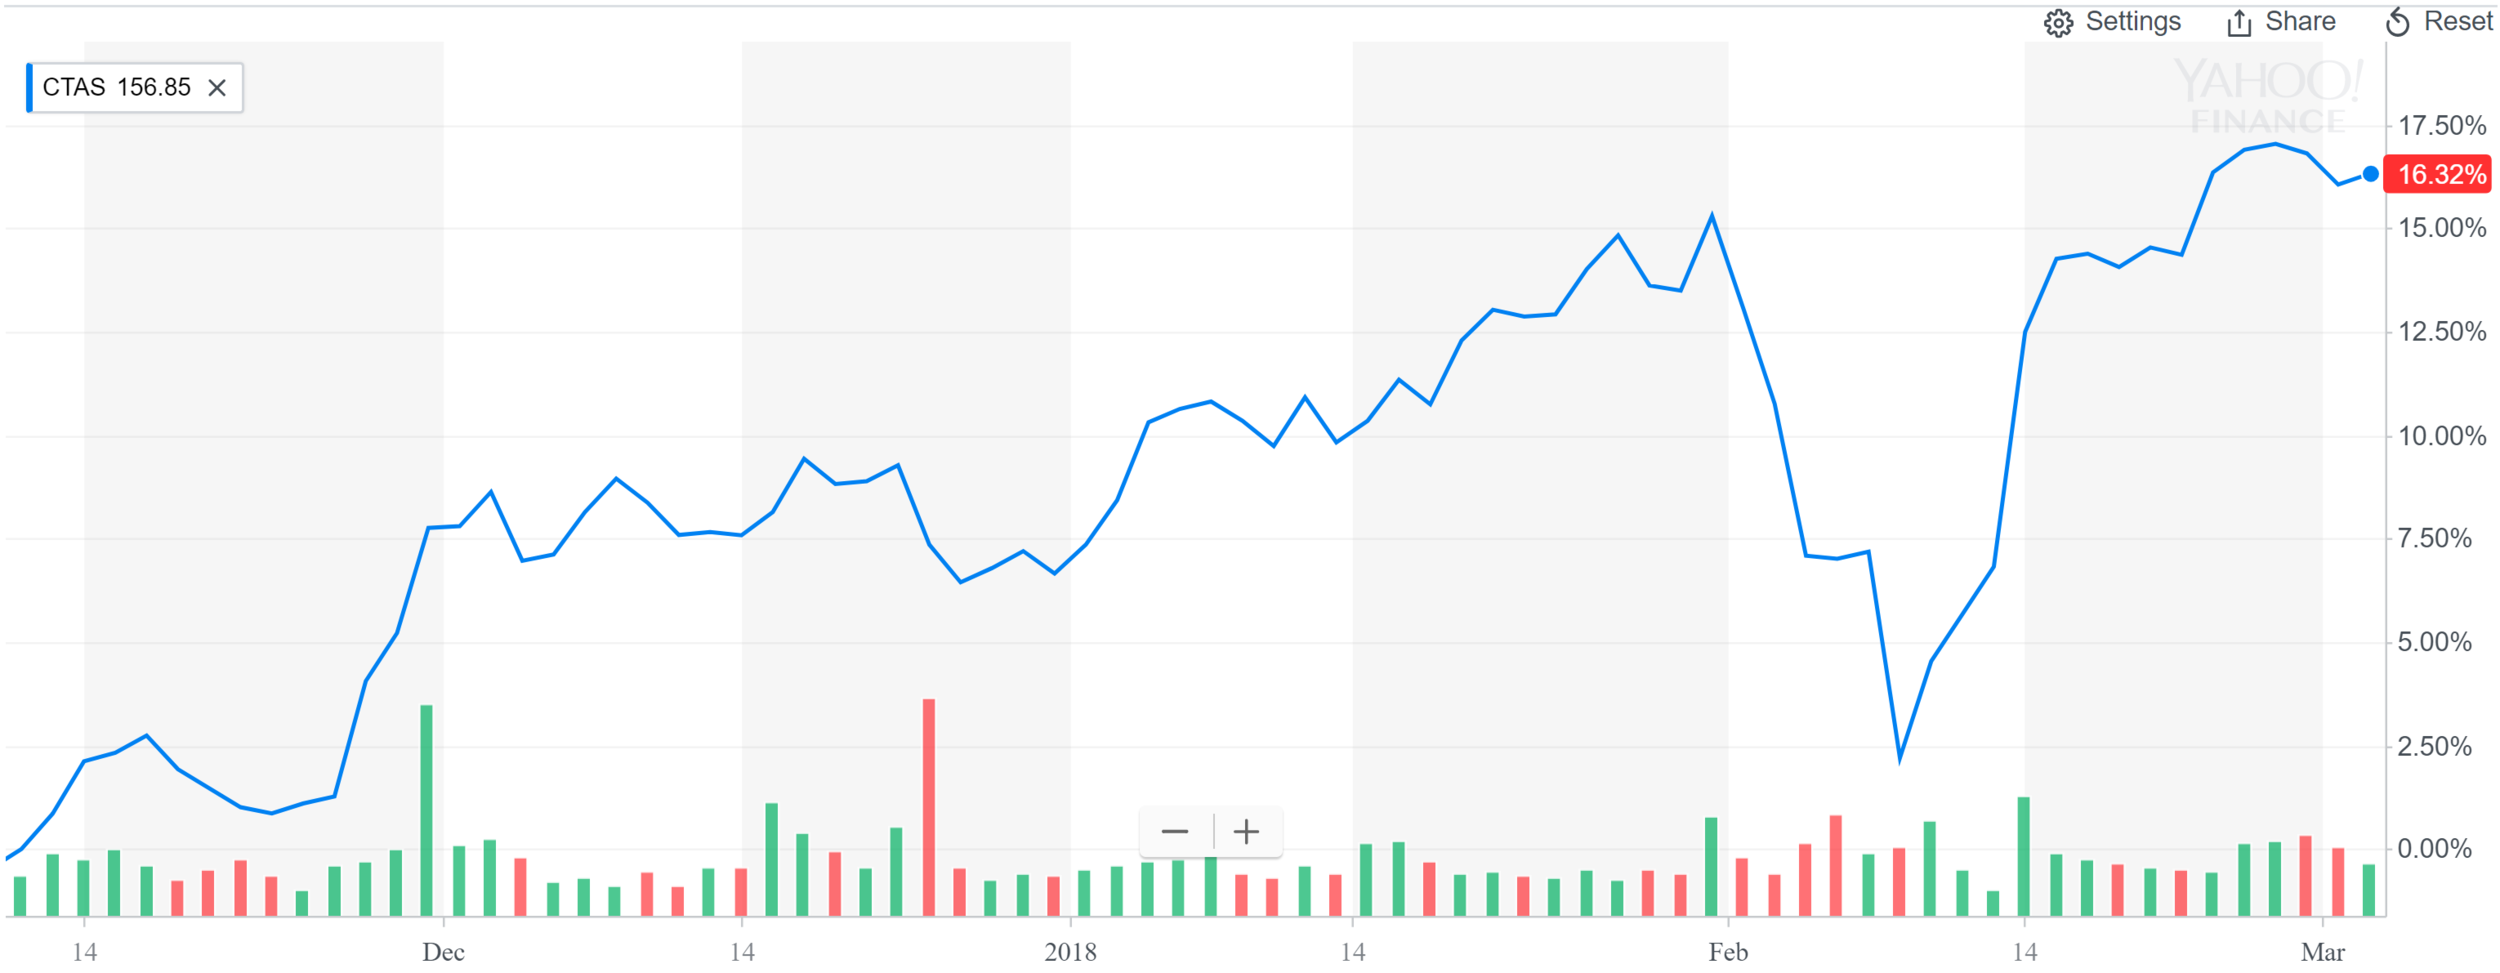 Up 16% since day of purchase